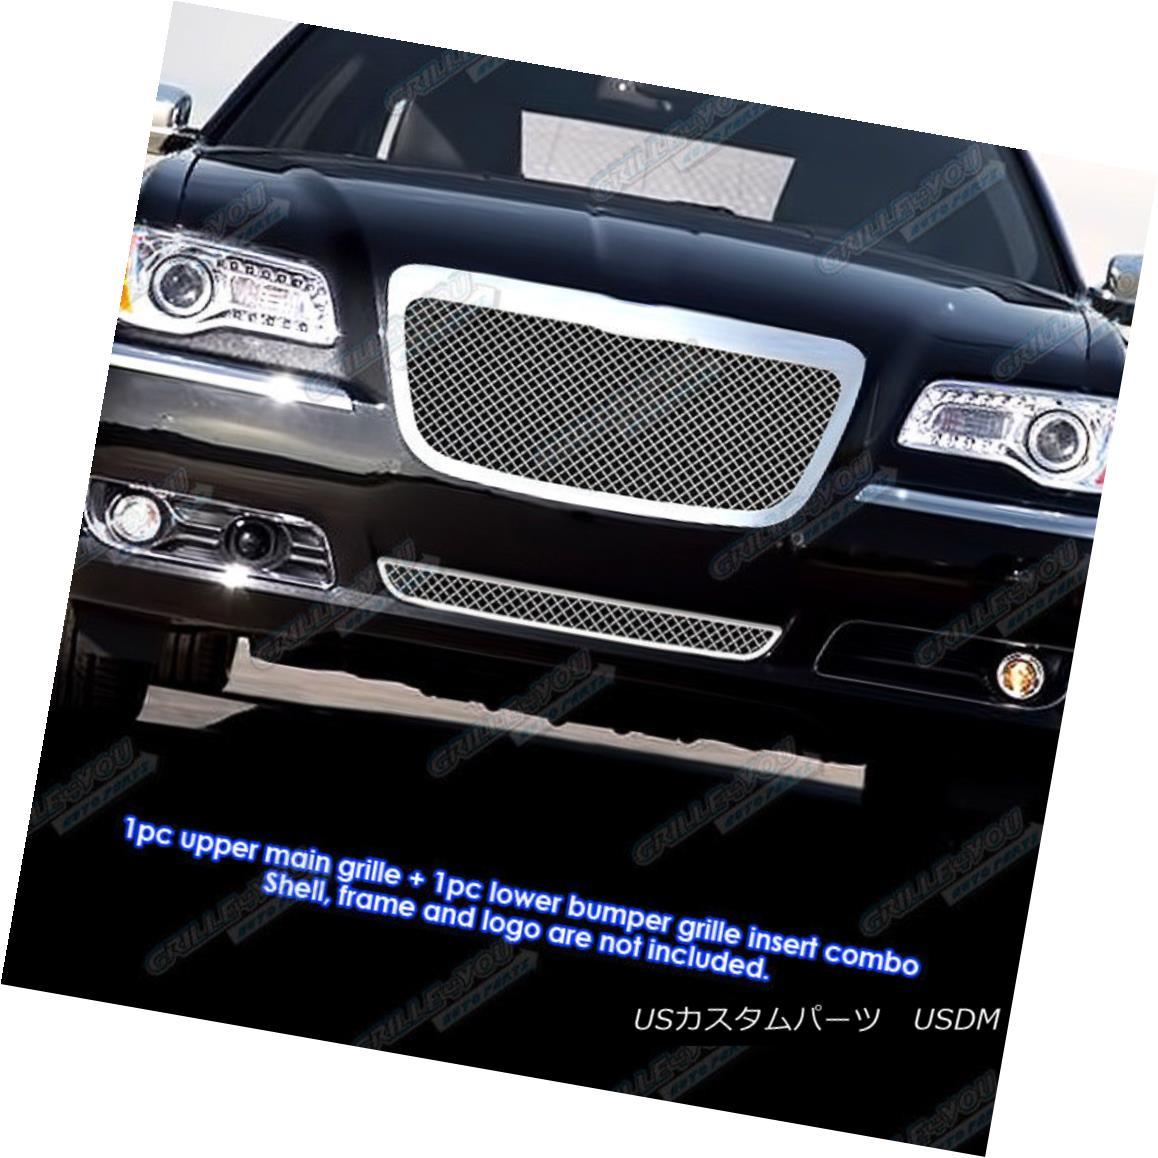 グリル Custom Fits 2011-2012 Chrysler 300/300C Stainless Steel Mesh Grill Combo Custom Fits 2011-2012 Chrysler 300 / 300Cステンレスメッシュグリルコンボ